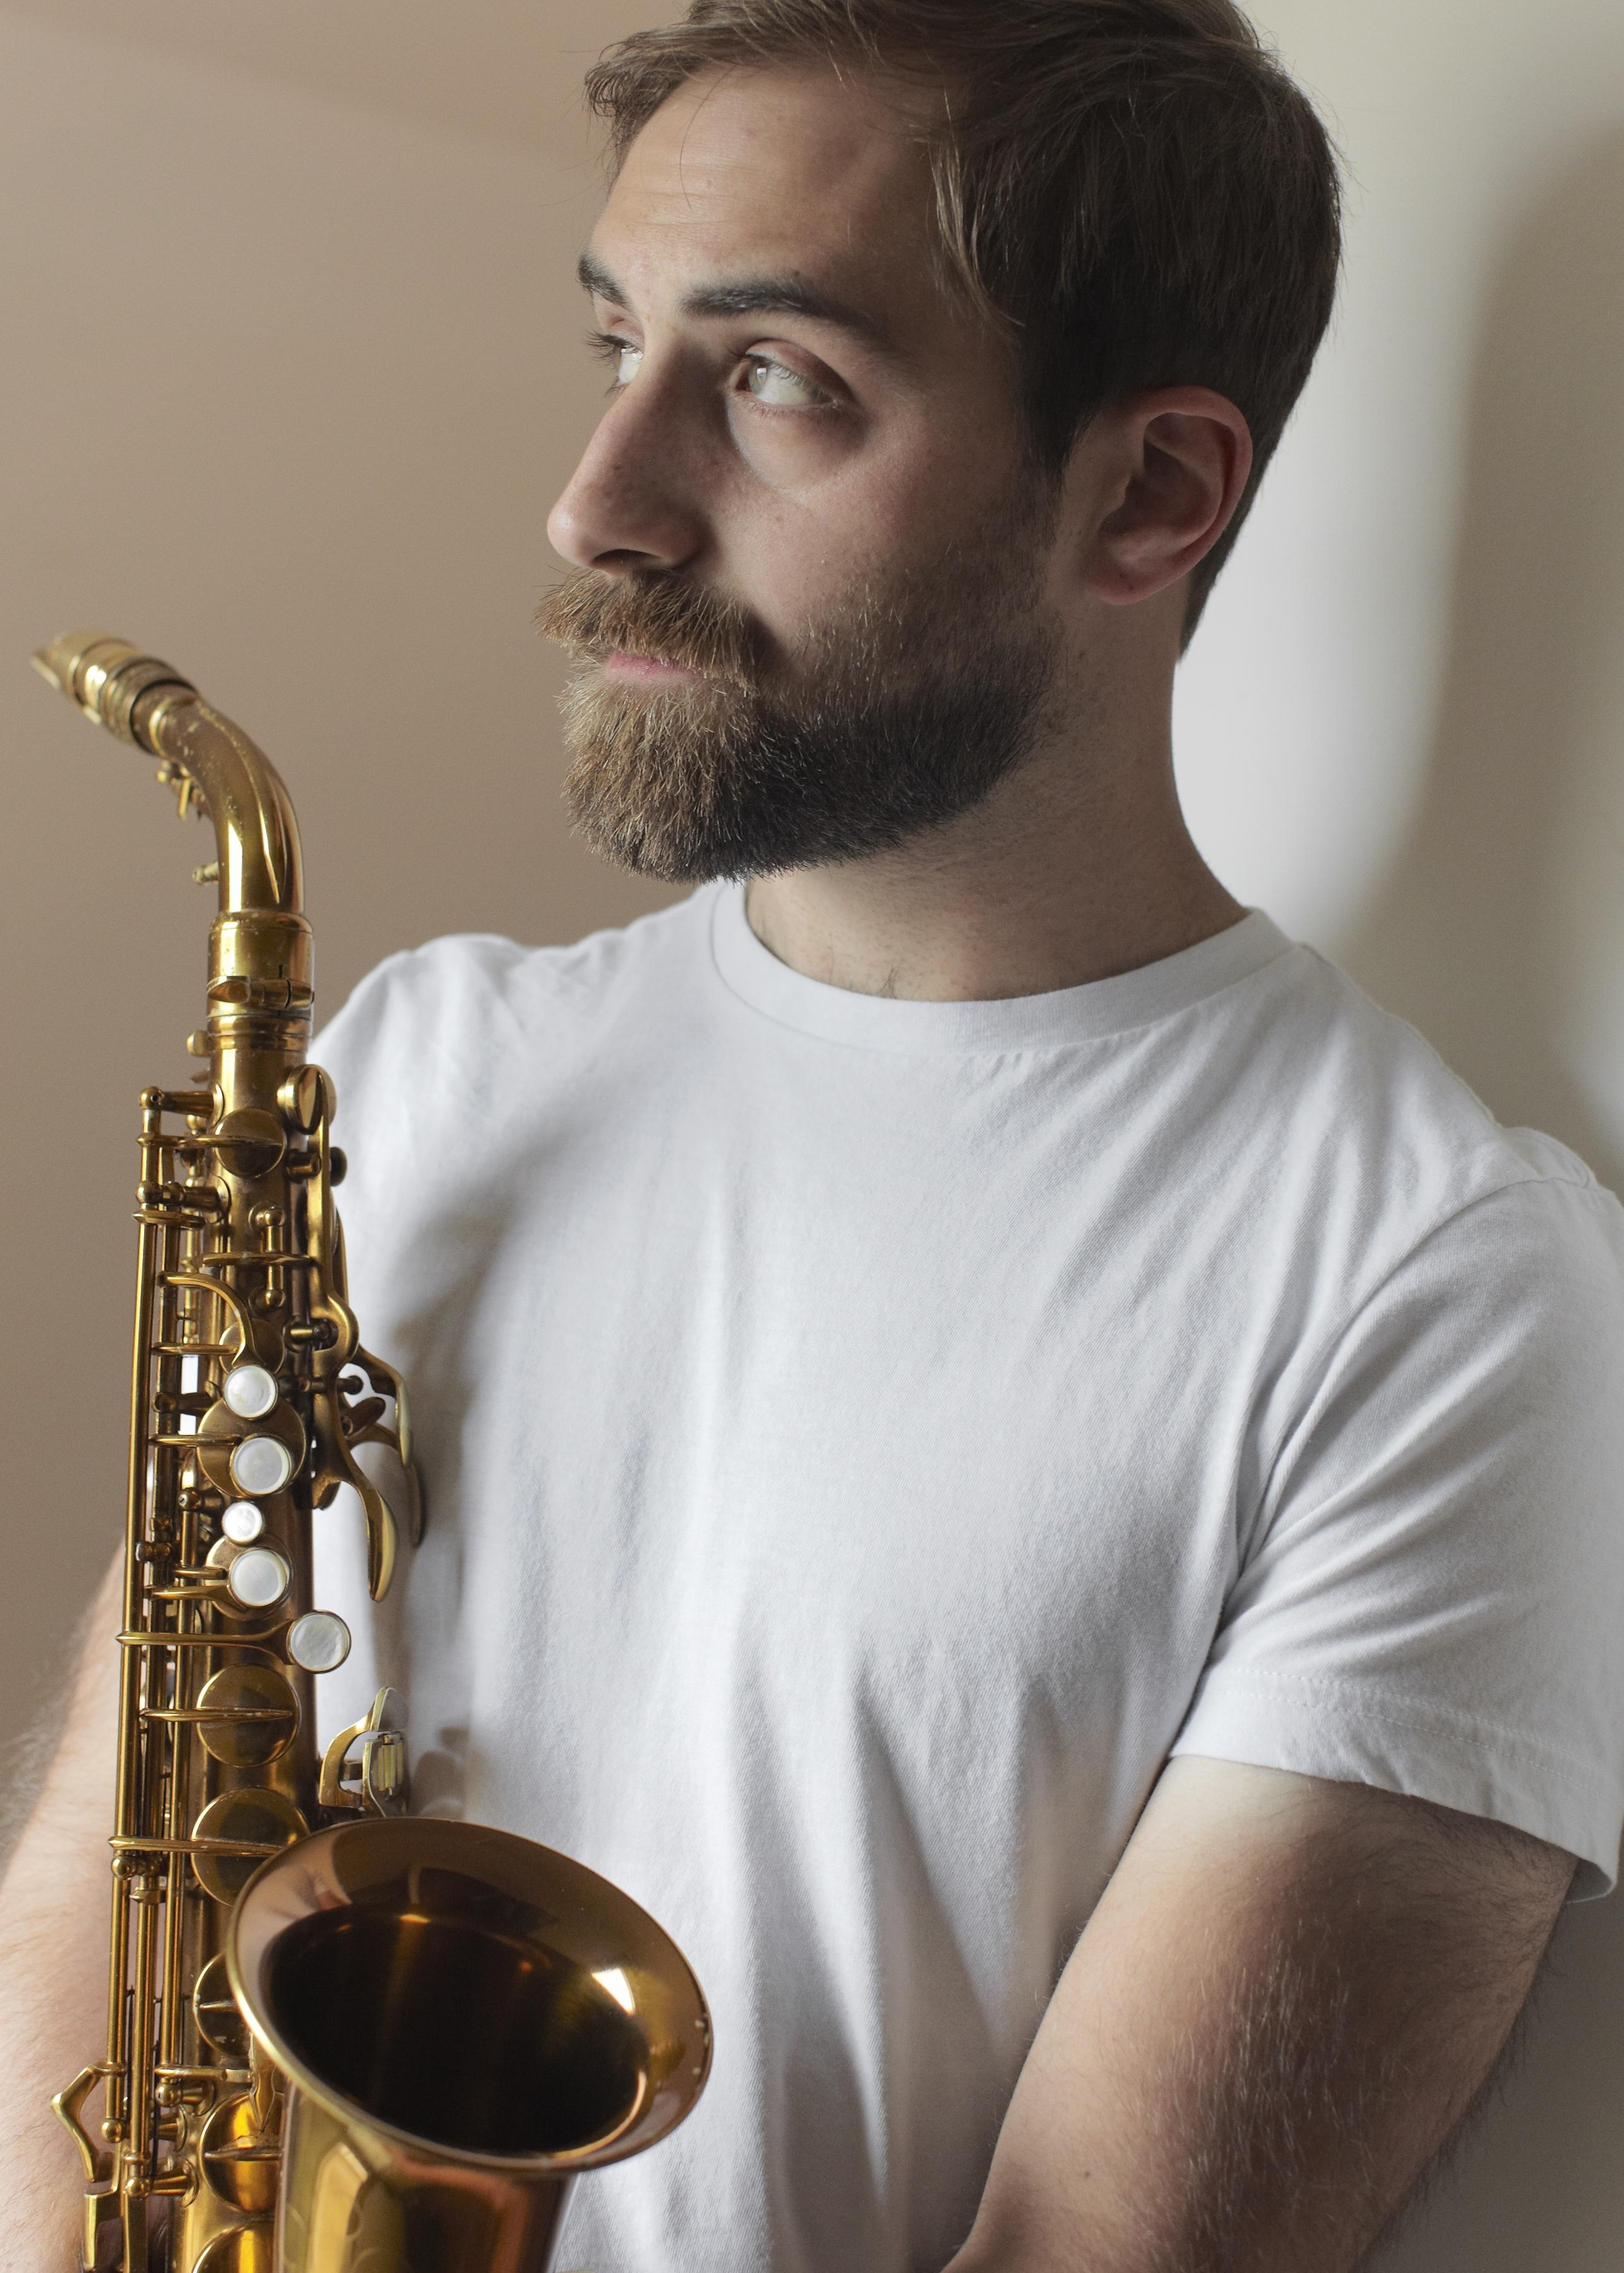 Portrait of a bearded young man holding a saxophone to his chest